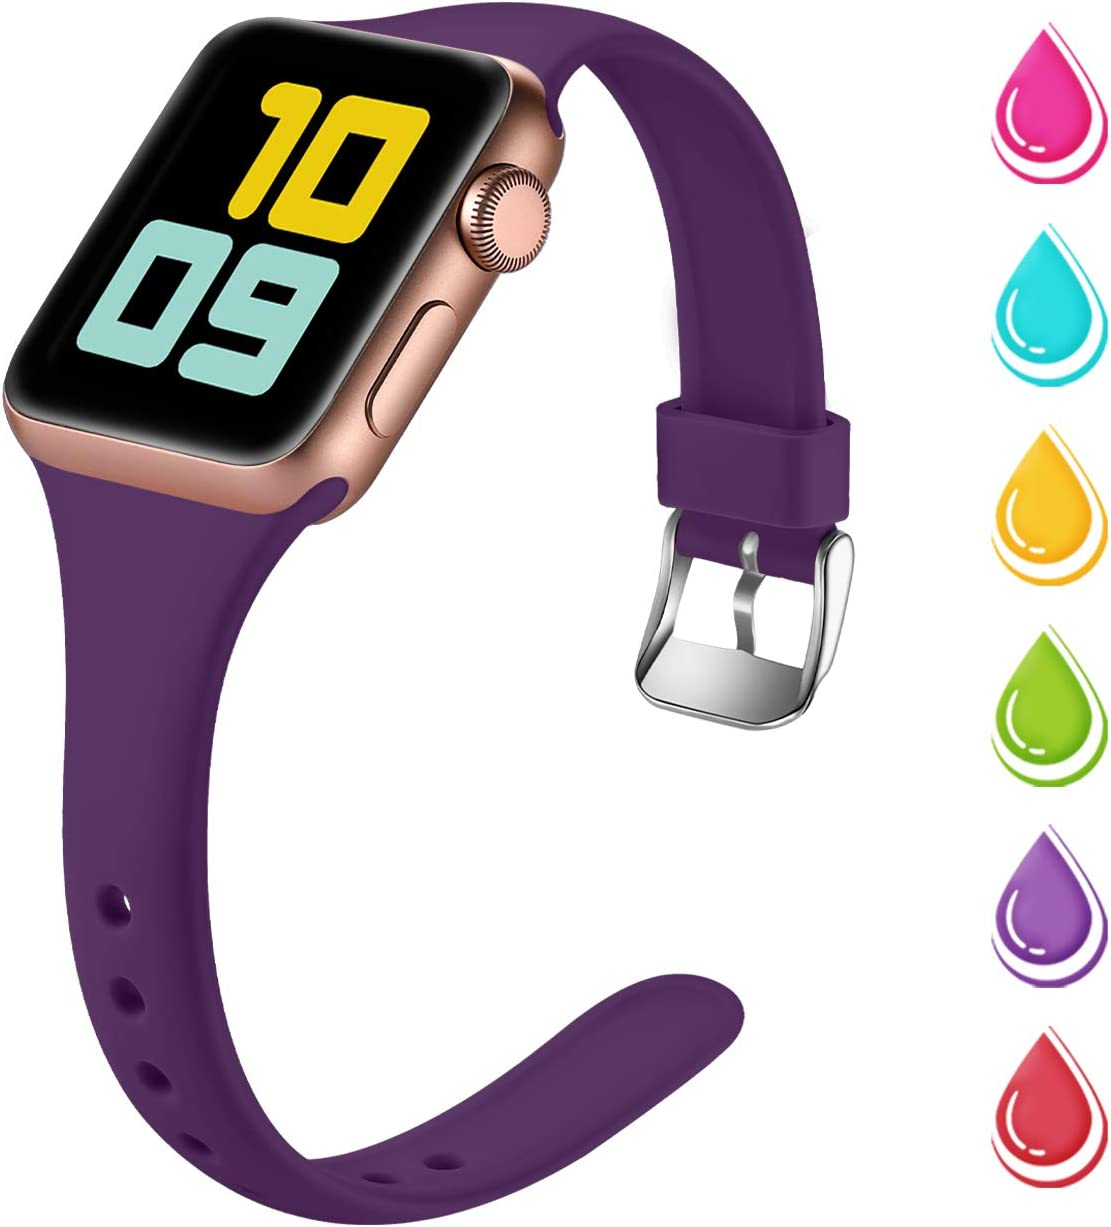 Nofeda Slim Band Compatible with Apple Watch 40mm 38mm, Narrow Thin Soft Silicone Sport Bands Replacement Strap for iWatch Series 5 4 3 2 1 Women Men, S/M, Plum